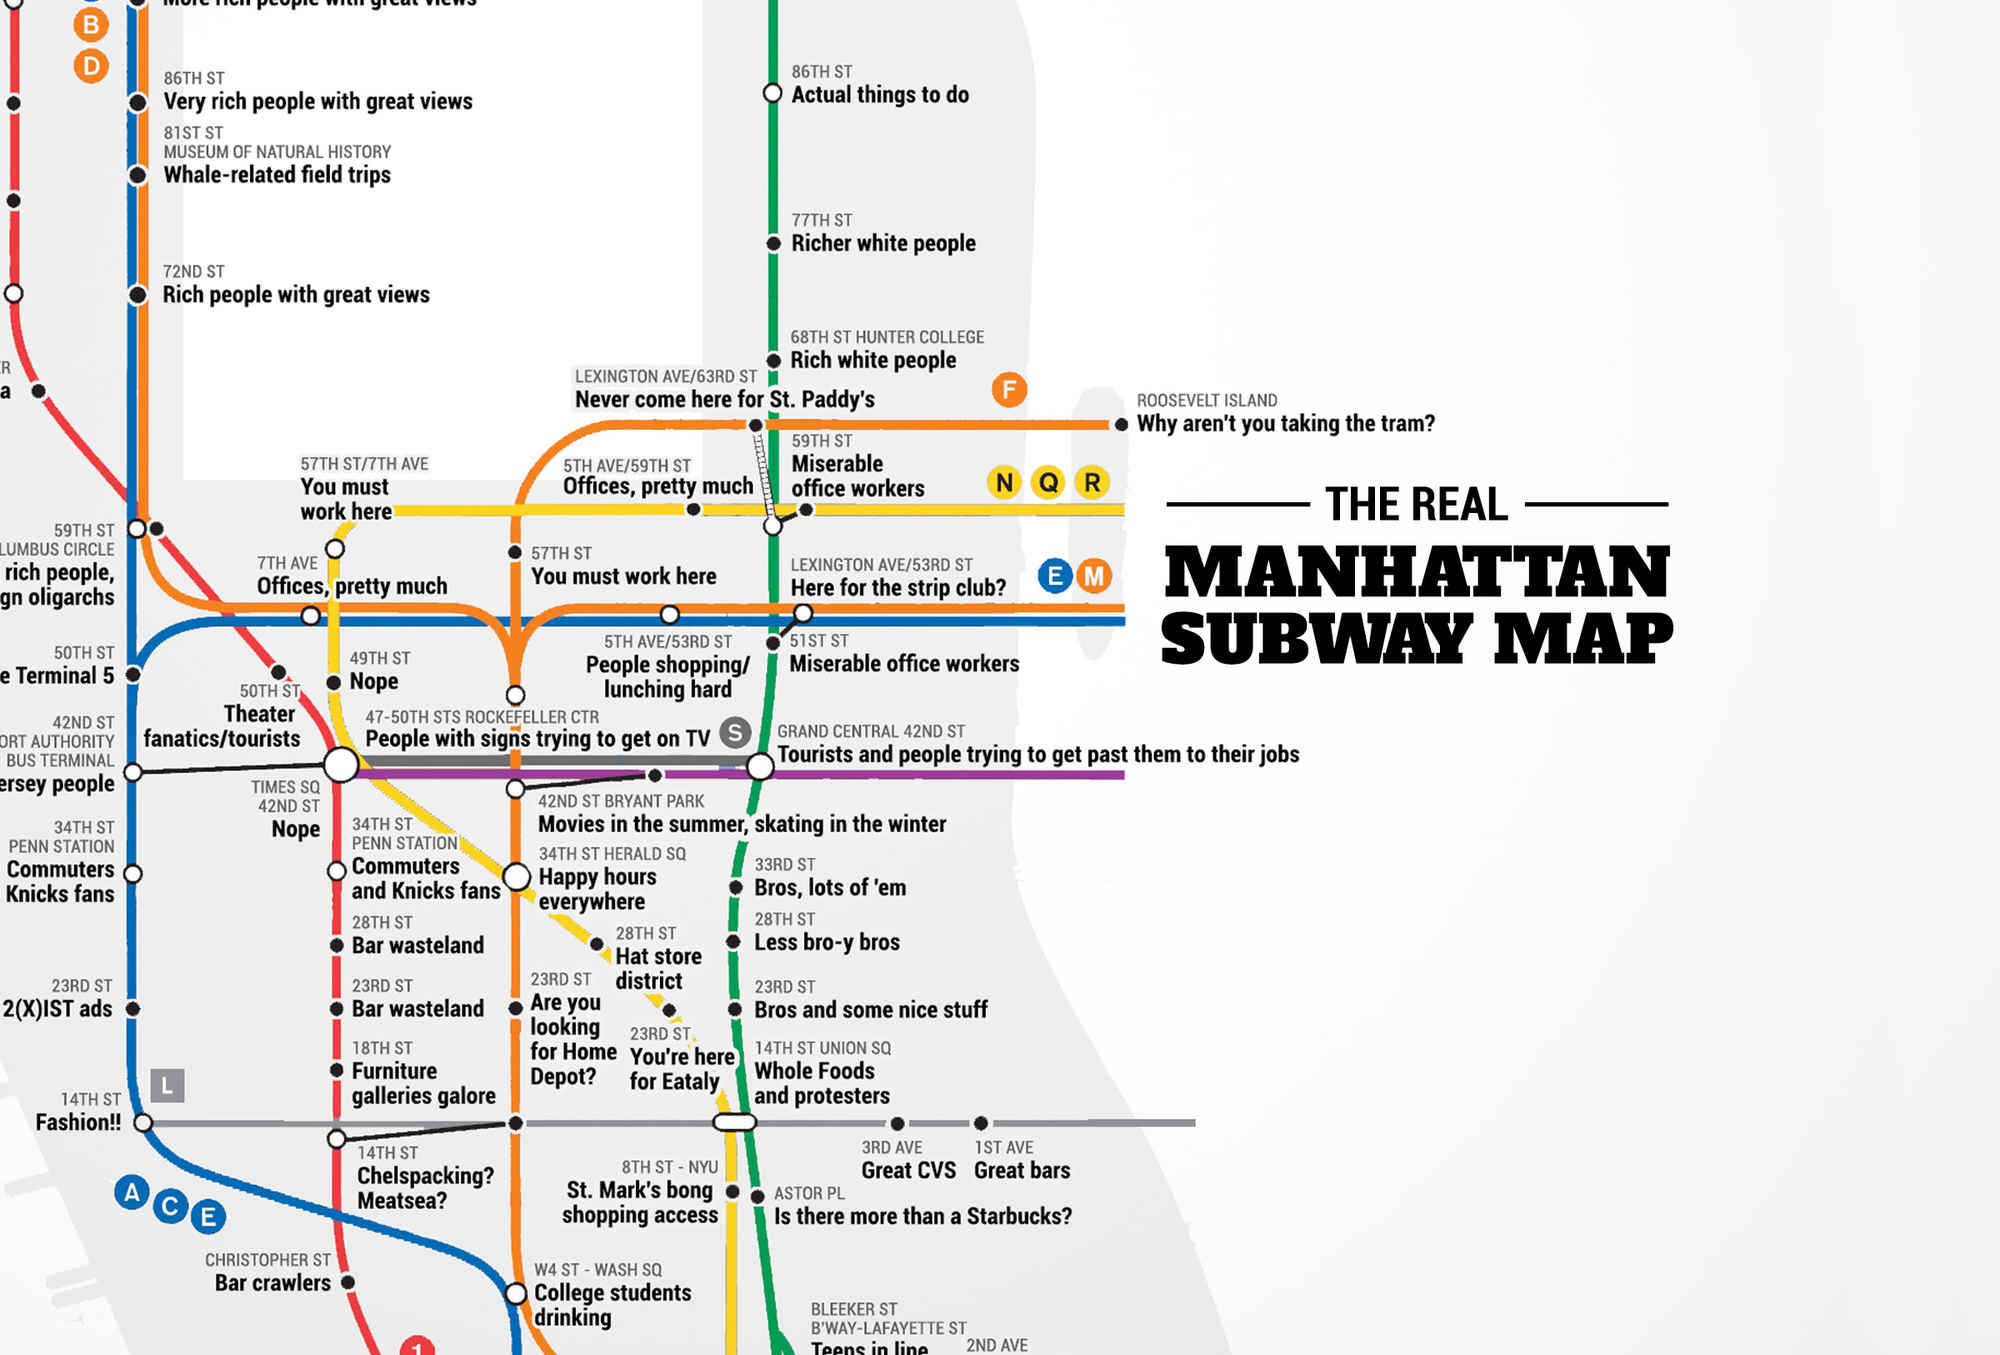 the real manhattan subway map huffpost